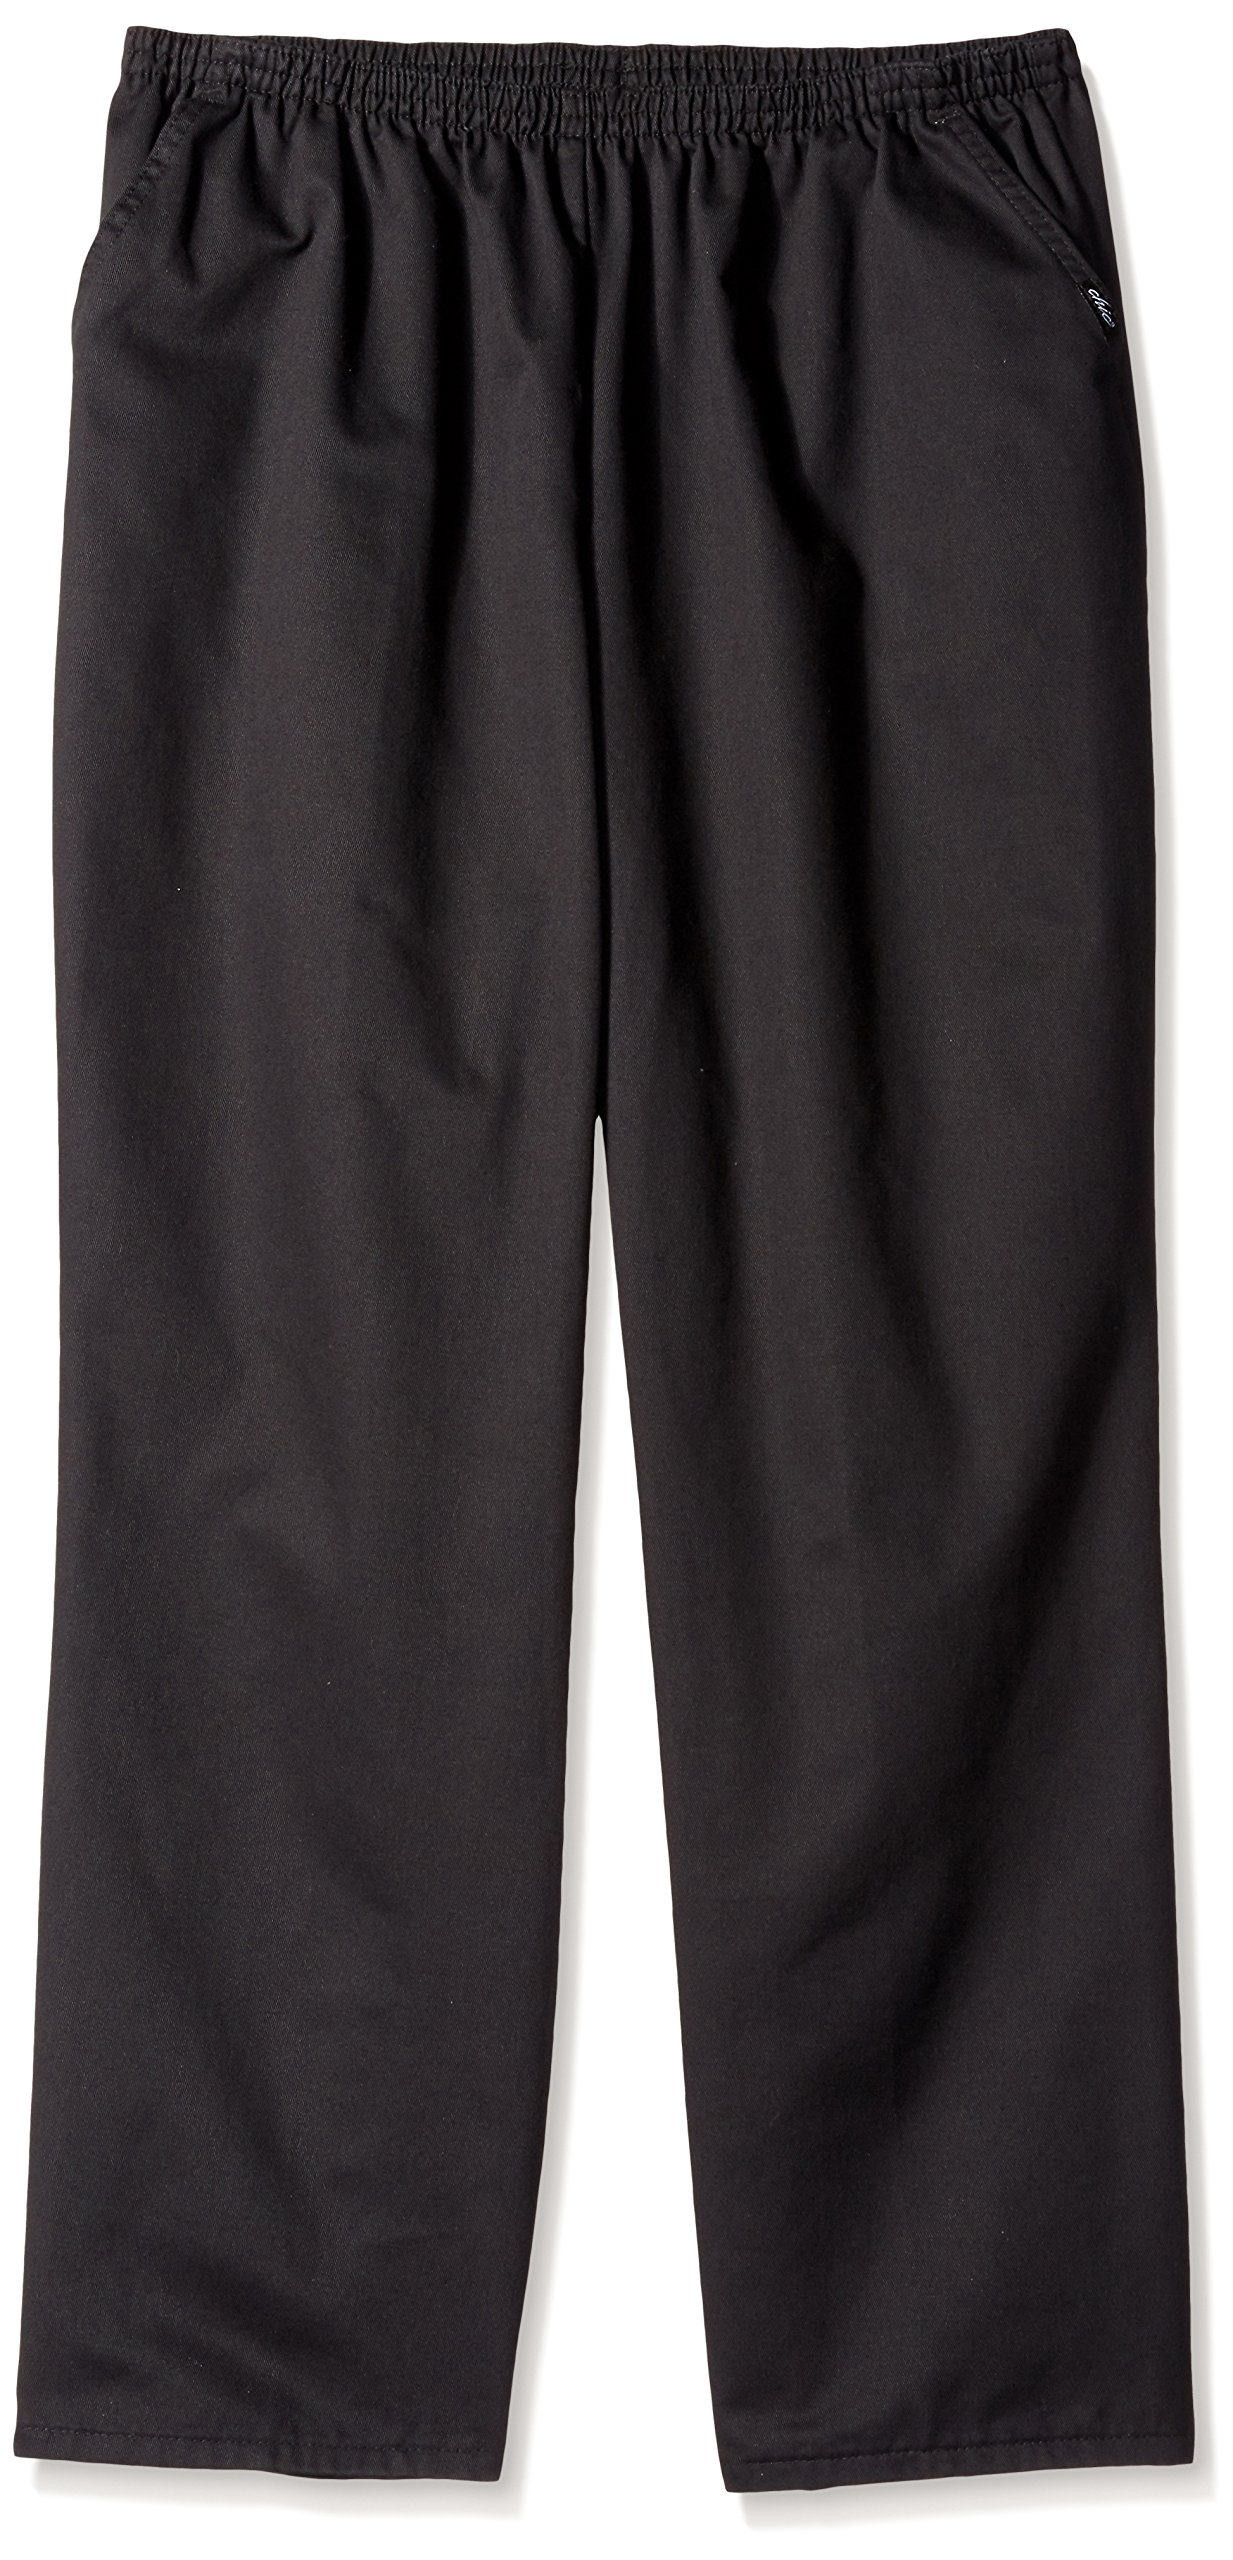 Chic Classic Collection Women's Petite Plus Stretch Elastic Waist Pull-On Pant, Black Twill, 20P